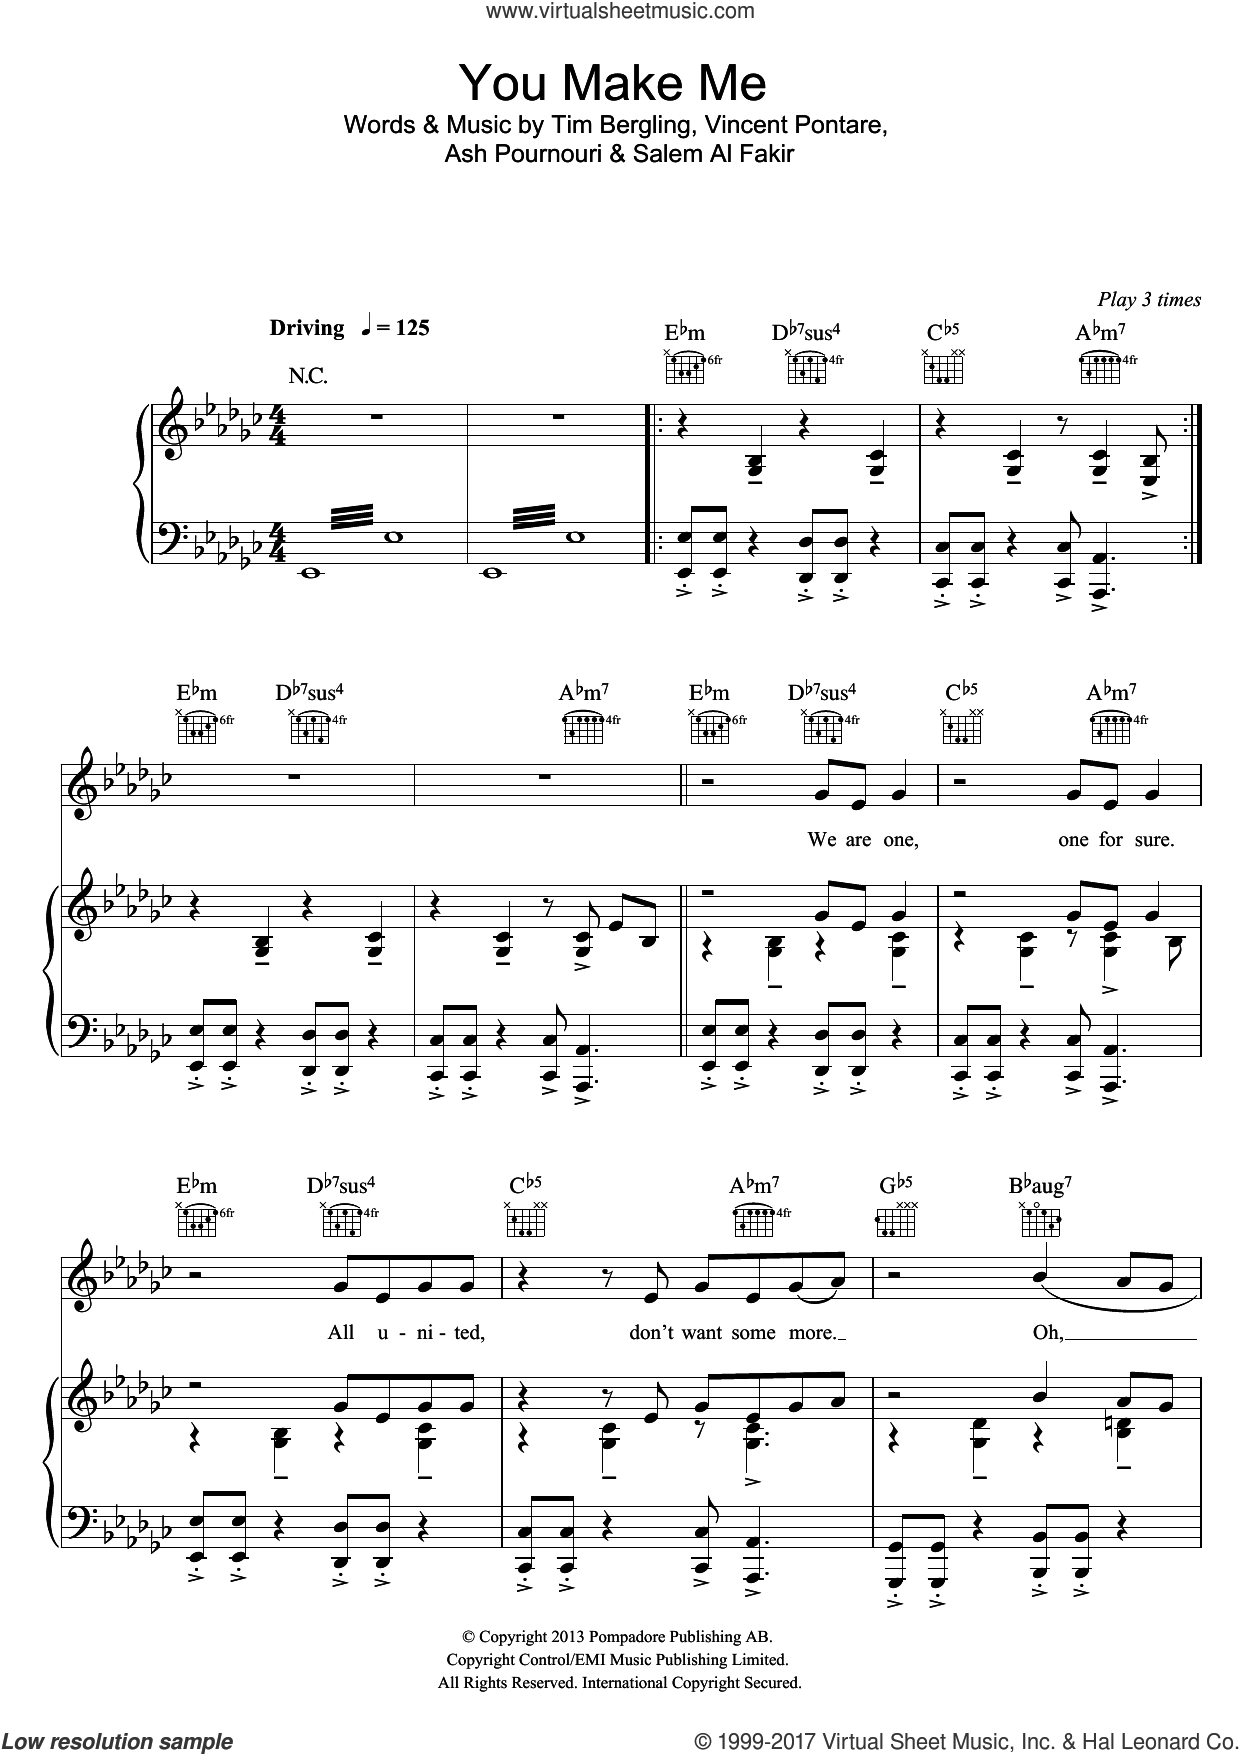 You Make Me sheet music for voice, piano or guitar by Avicii, Ash Pournouri, Salem Al Fakir, Tim Bergling and Vincent Pontare, intermediate skill level